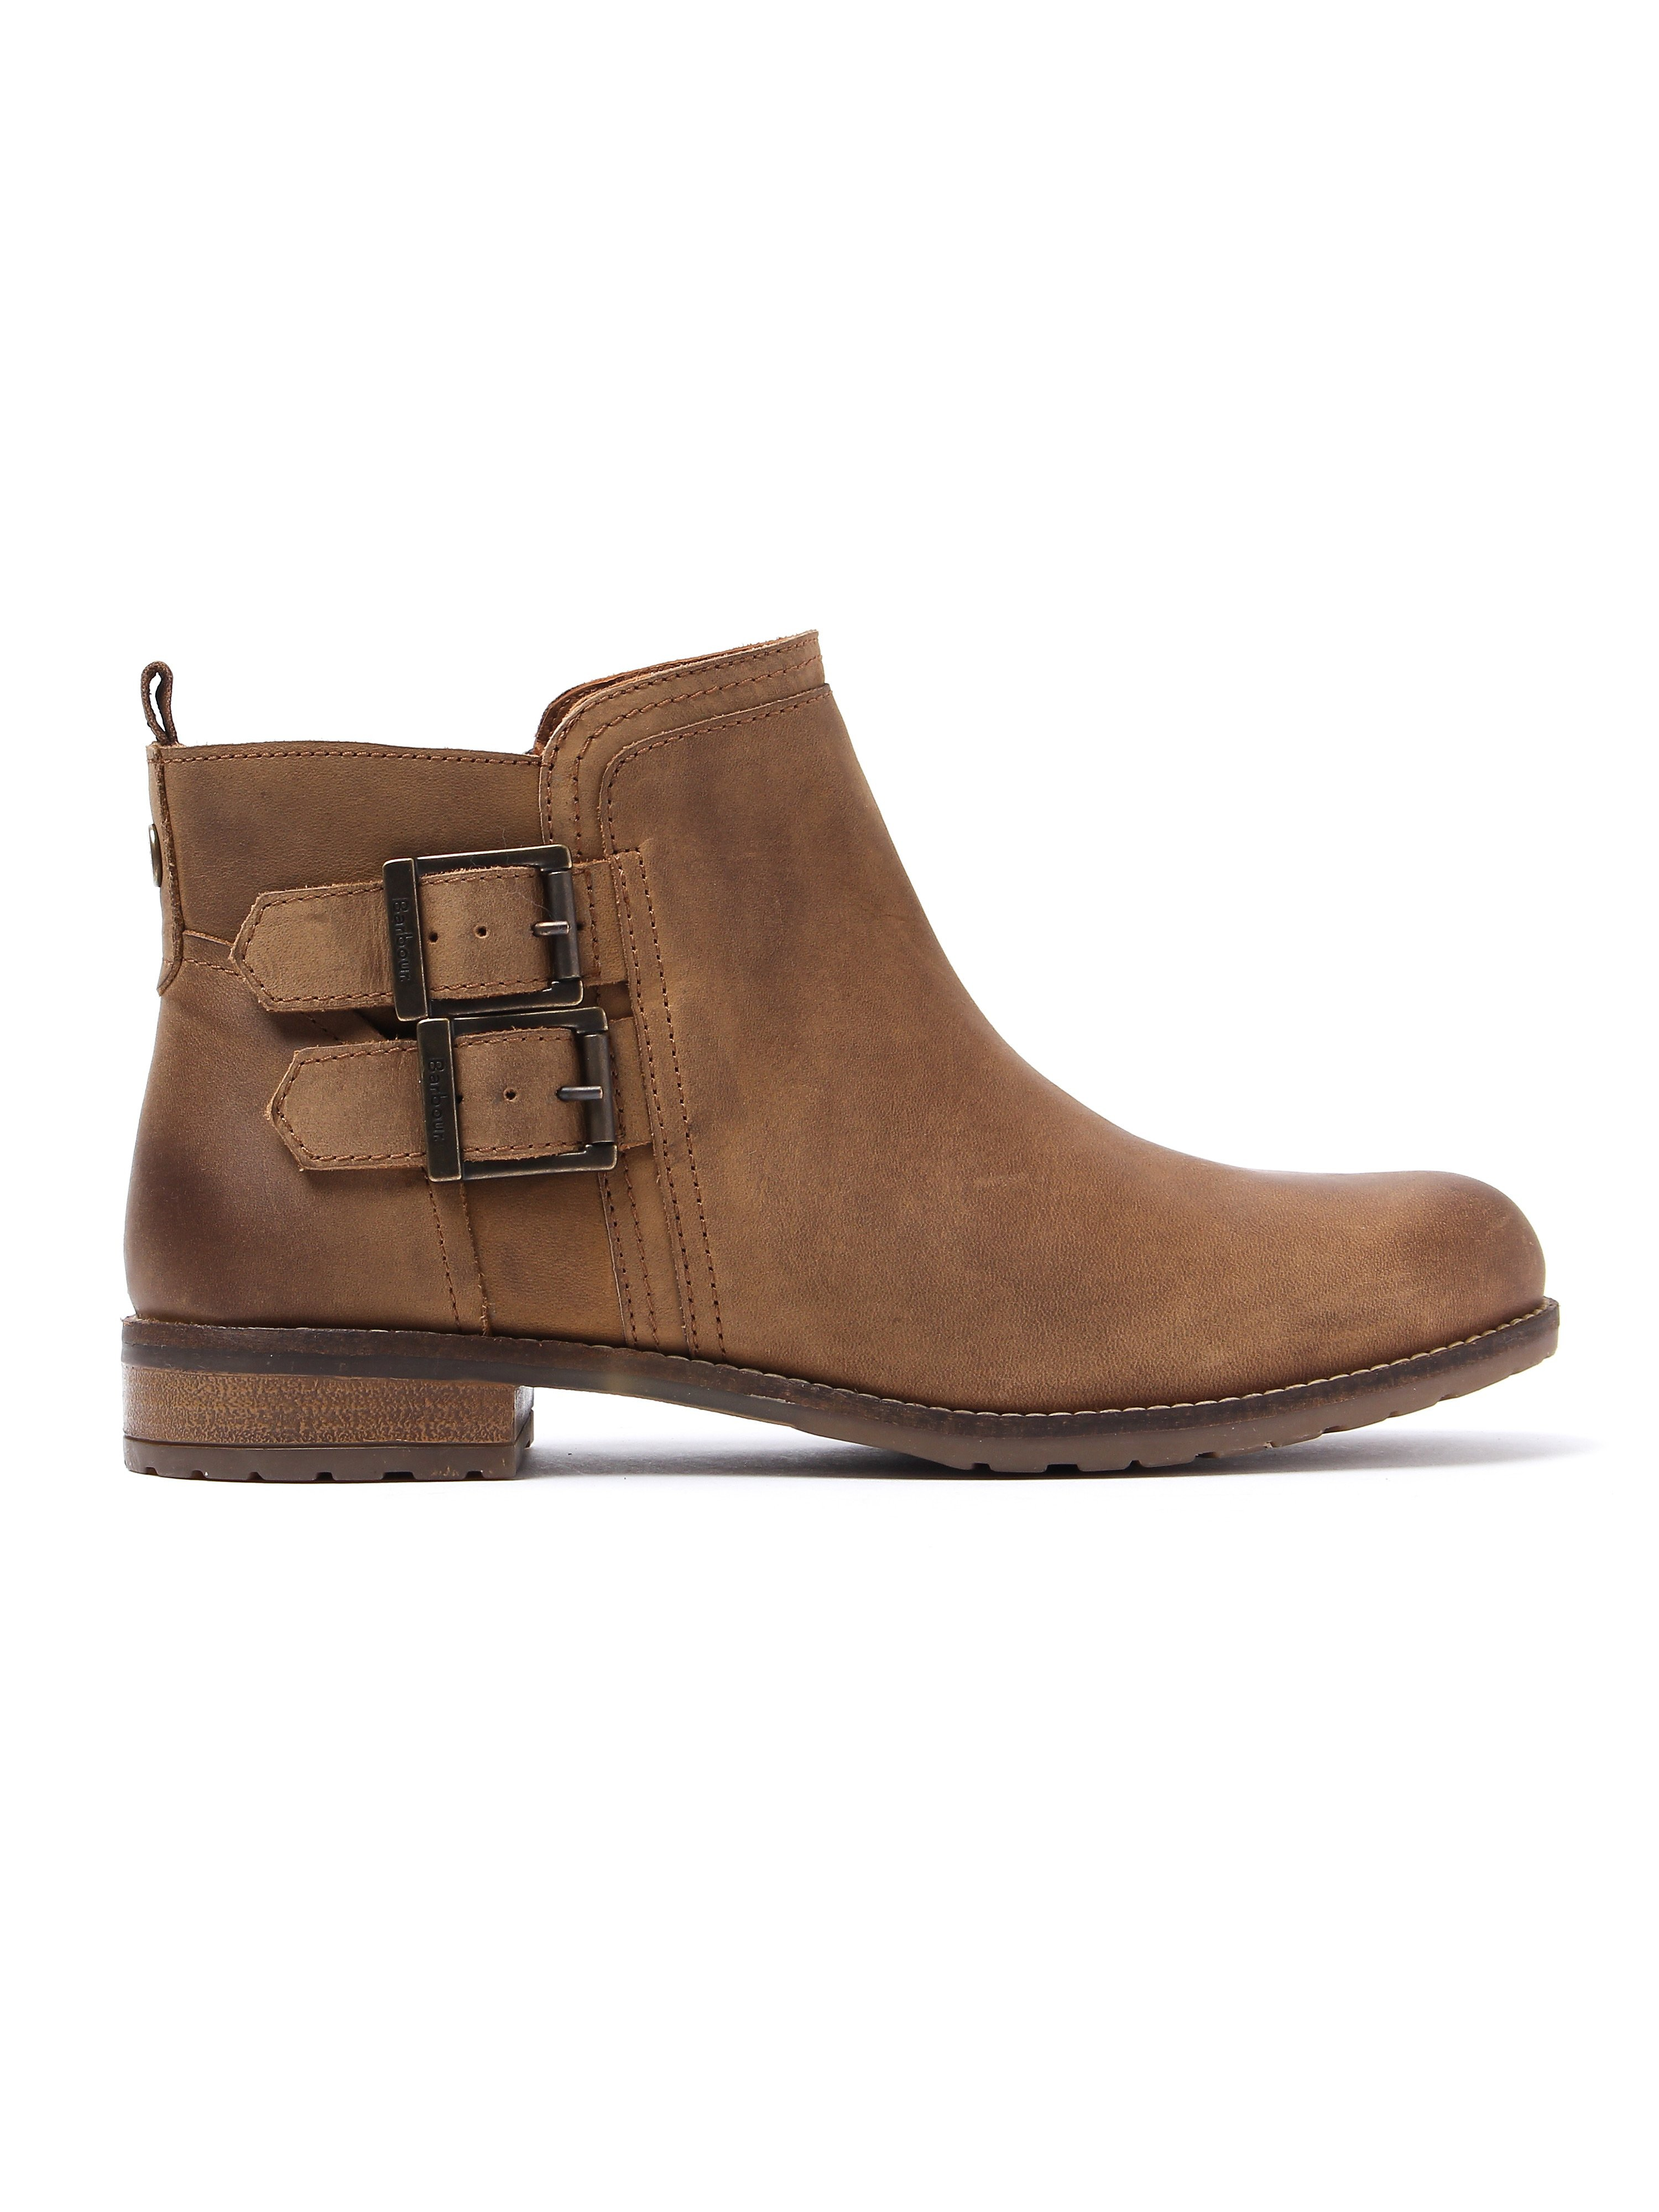 Barbour Women's Sarah Low Buckle Boots - Cognac Nubuck